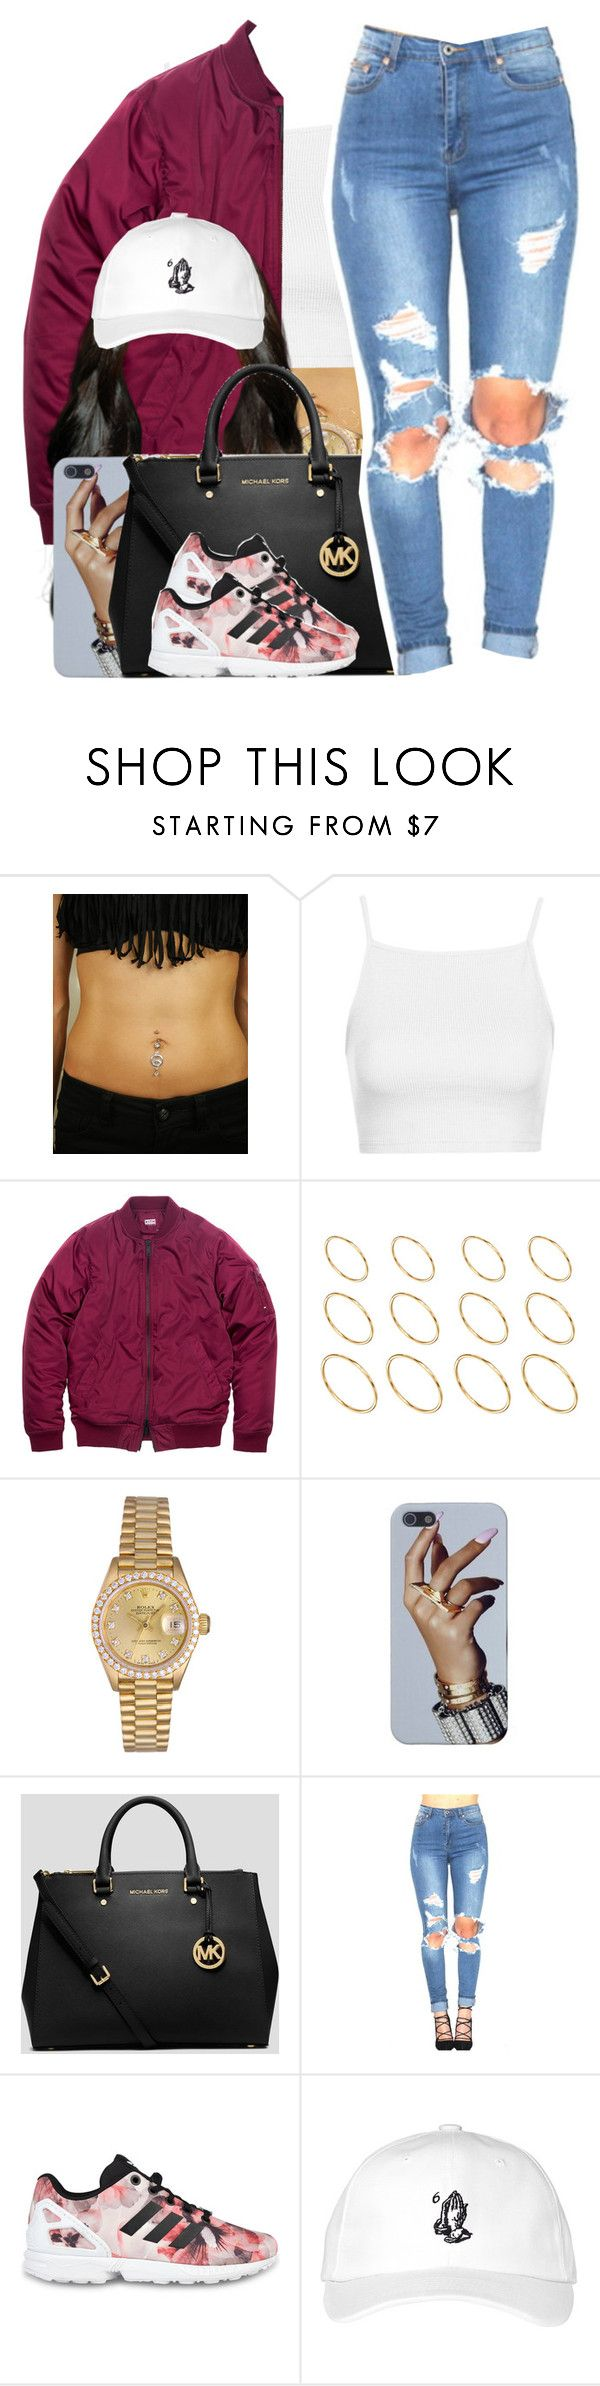 """""""Bryson Tiller / Overtime"""" by nasiaamiraaa ❤ liked on Polyvore featuring Topshop, ASOS, Rolex, MICHAEL Michael Kors, adidas Originals, October's Very Own and NanaOutfits"""